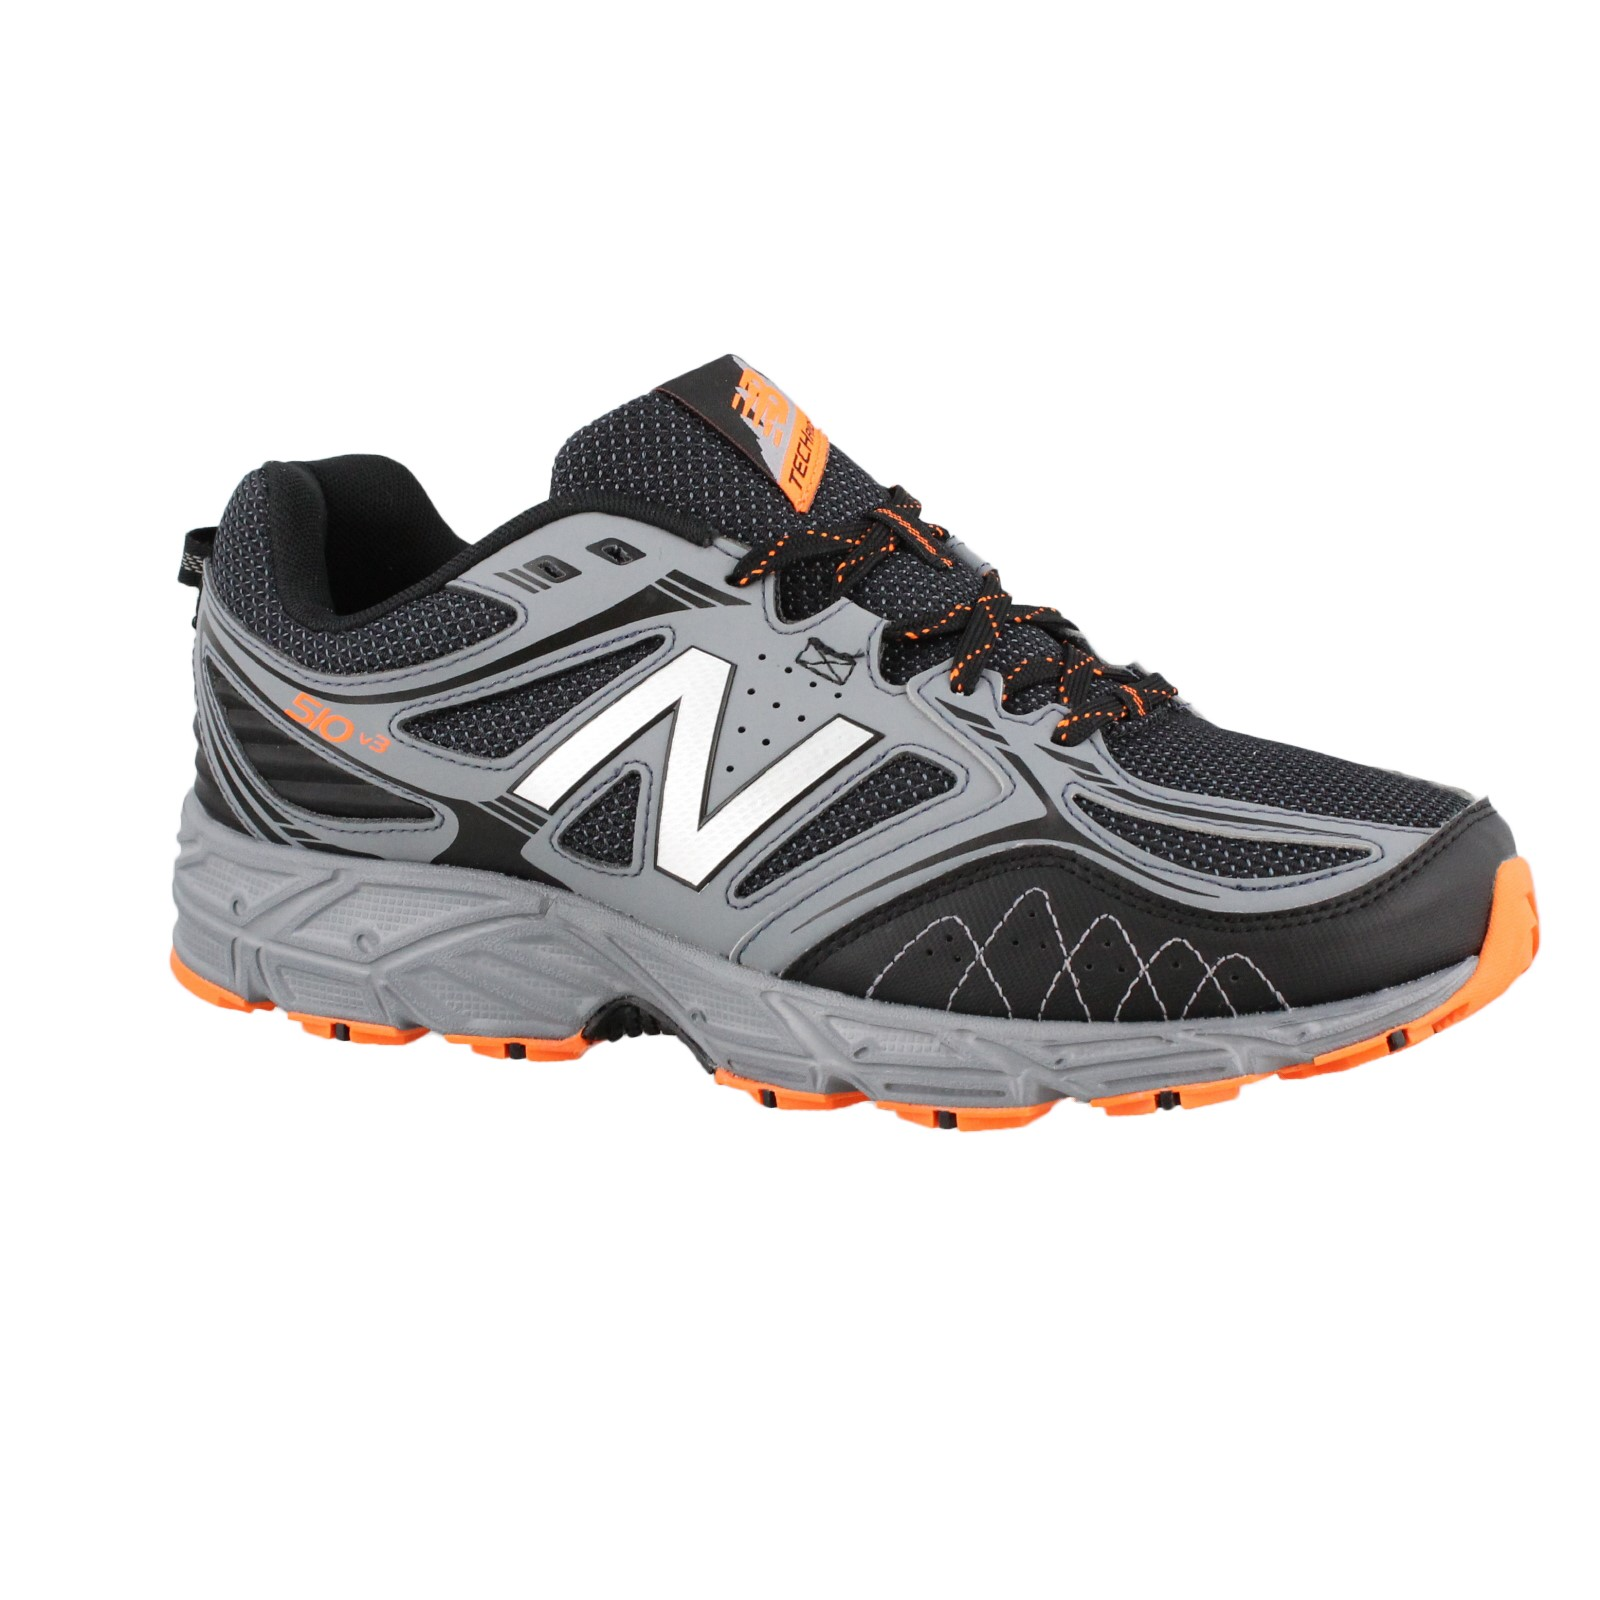 e2995acccc6 Next. add to favorites. Men s New Balance